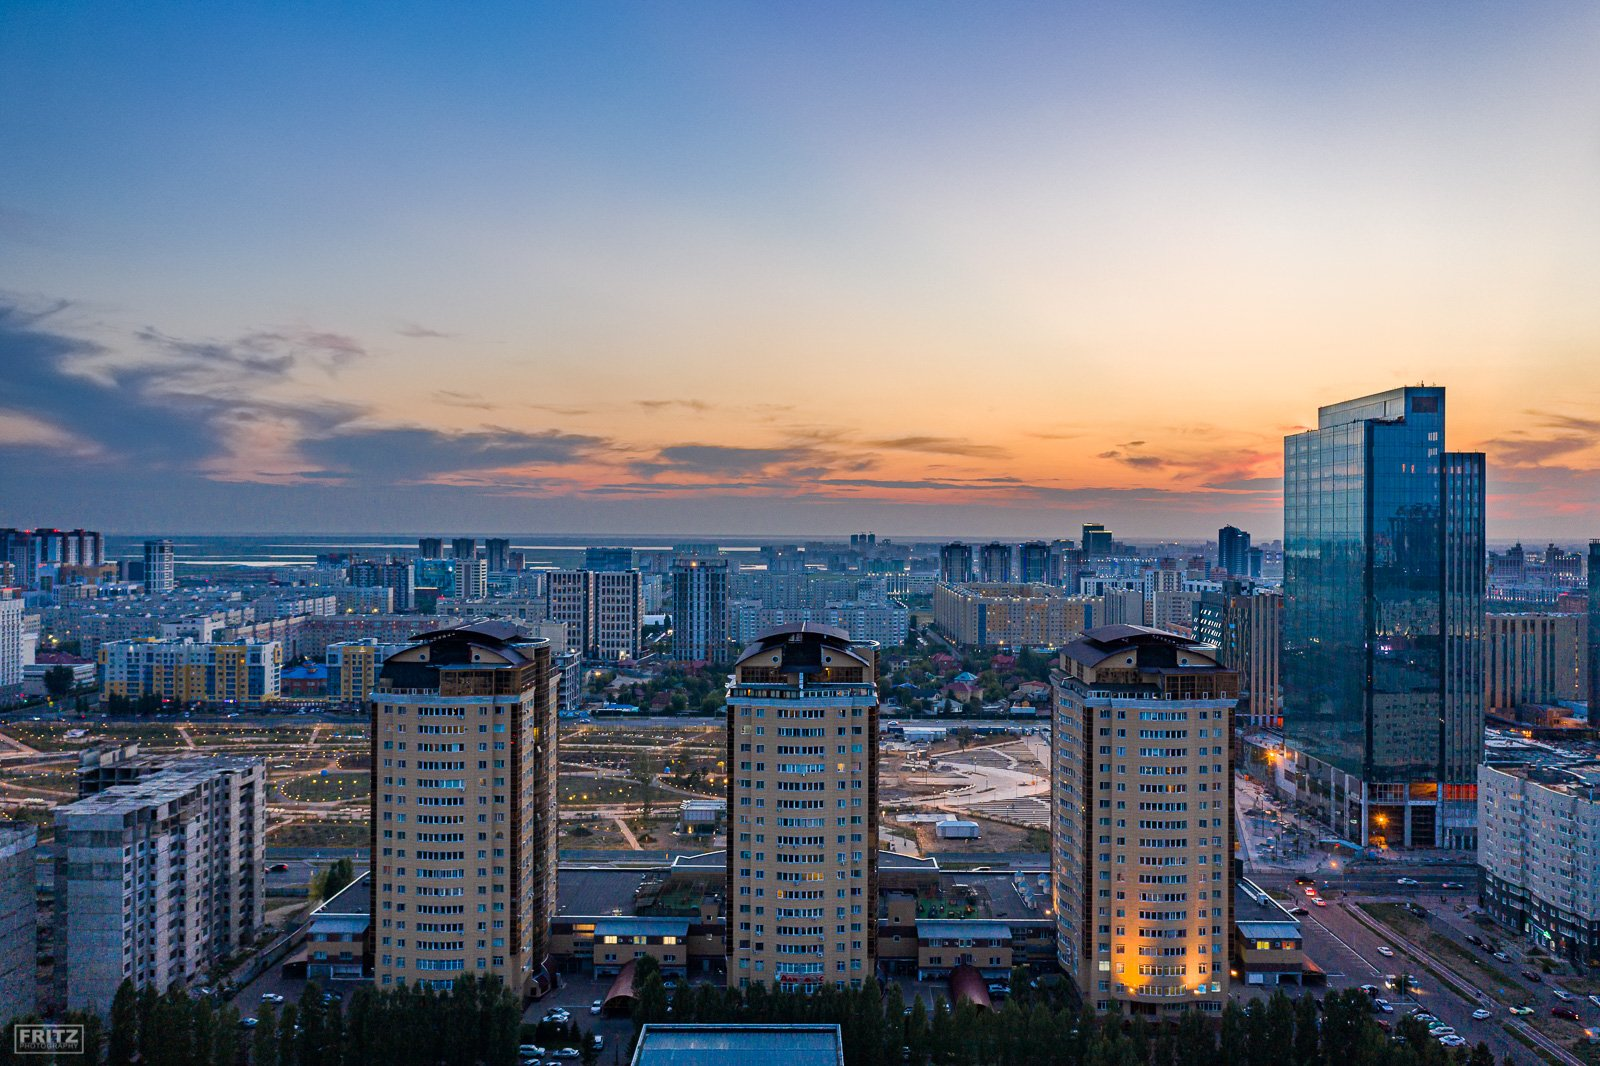 Architecture. Astana. Drone Photography